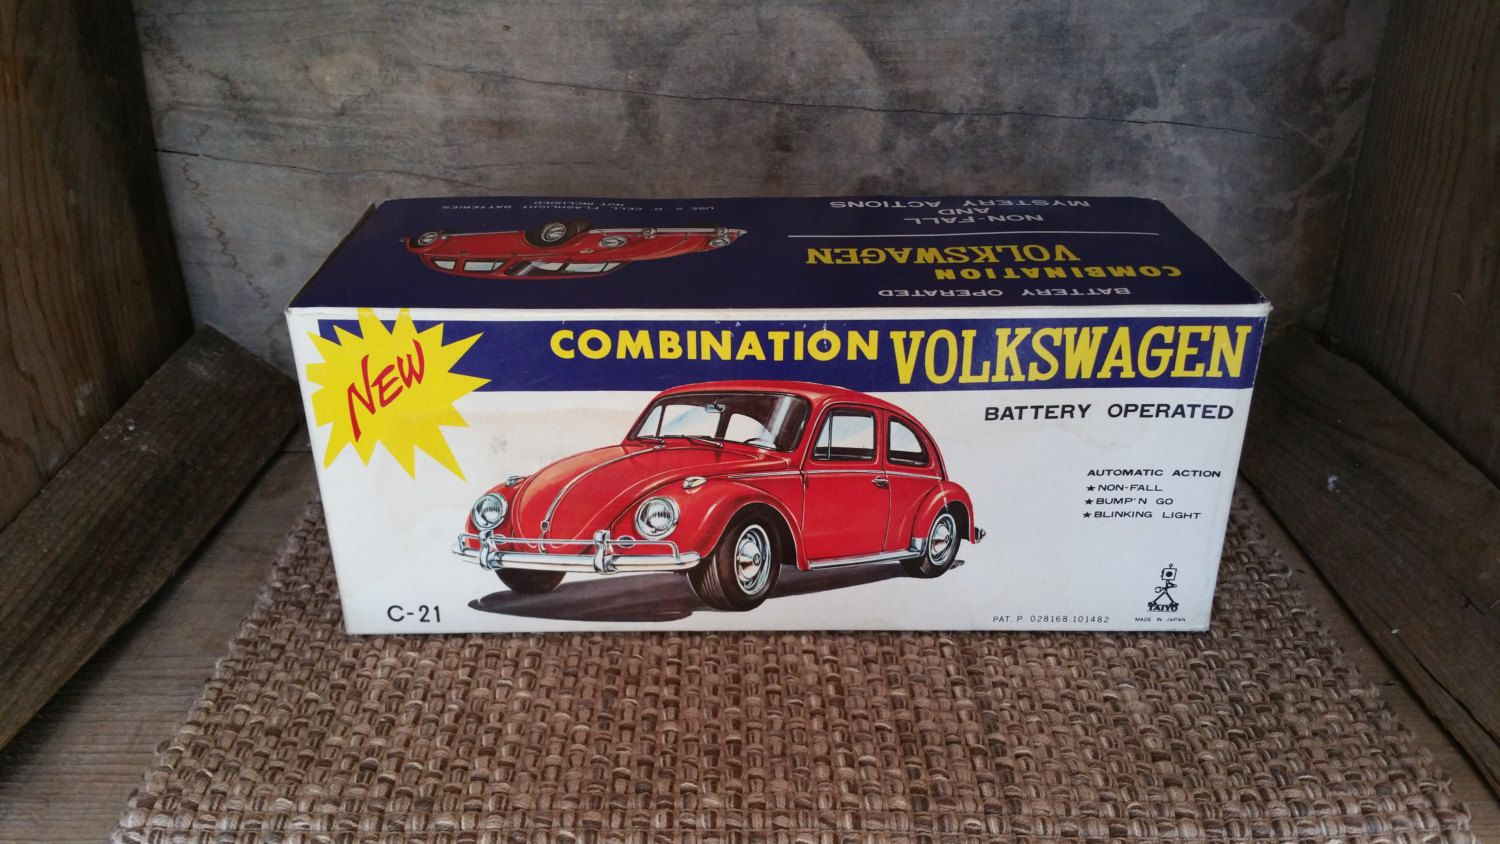 Taiyo Toy Combination Volkswagen Battery Operated Tin An Vw Beetle Bug By Treasurehunterco On Etsy